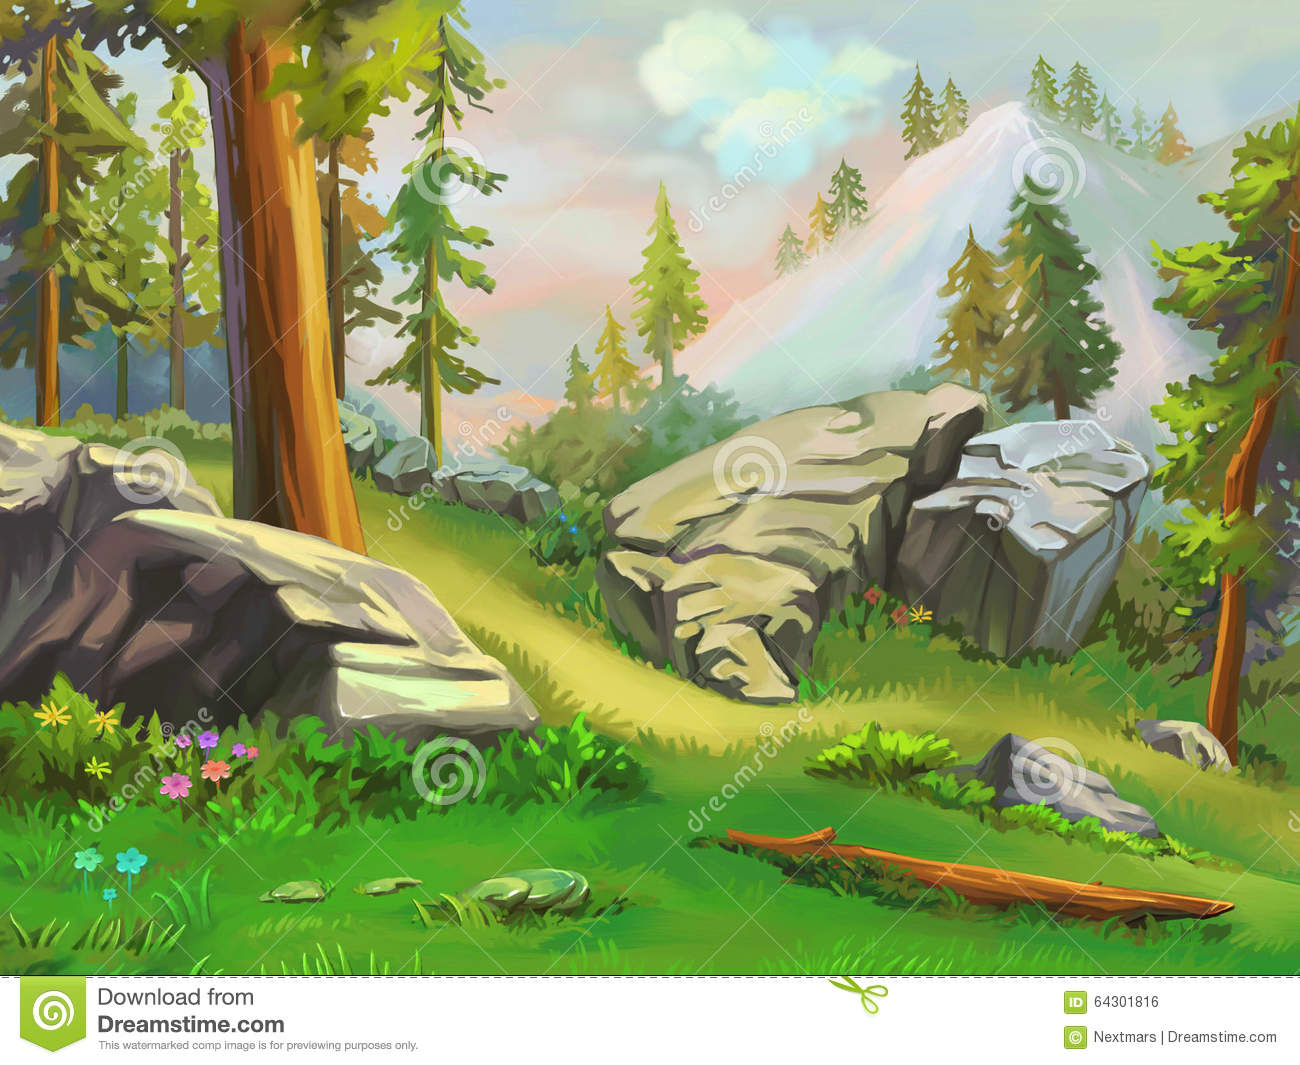 Most Inspiring Wallpaper Mountain Cartoon - illustration-take-short-rest-mountain-woodland-fantastic-cartoon-style-wallpaper-background-scene-design-64301816  Trends_187549.jpg